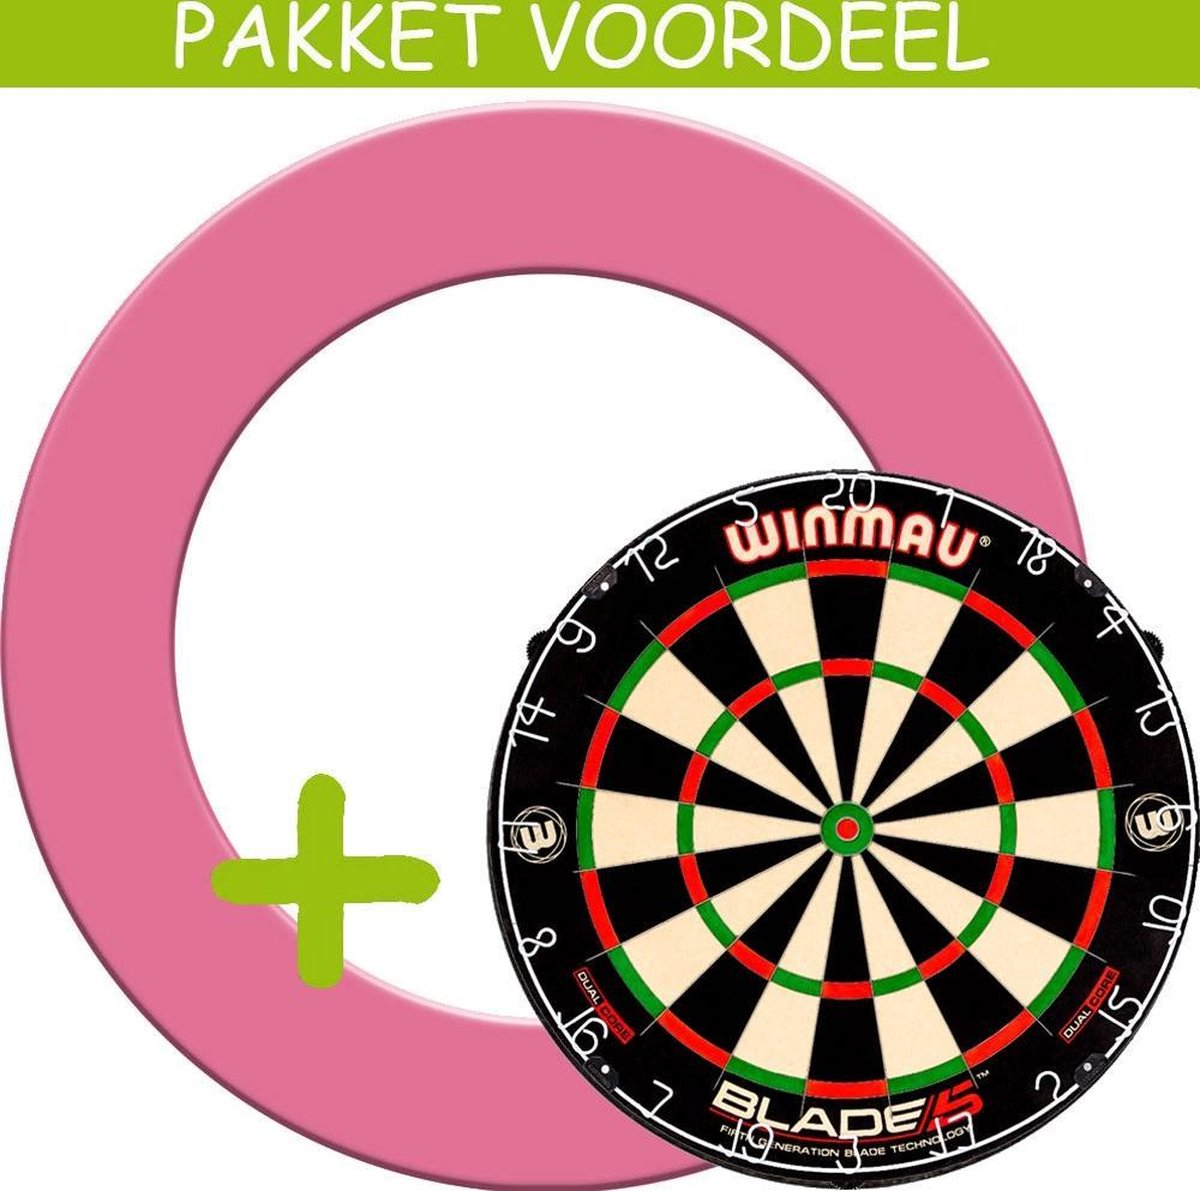 Dartbord Surround VoordeelPakket - Dual Core - Rubberen Surround-- (Roze)